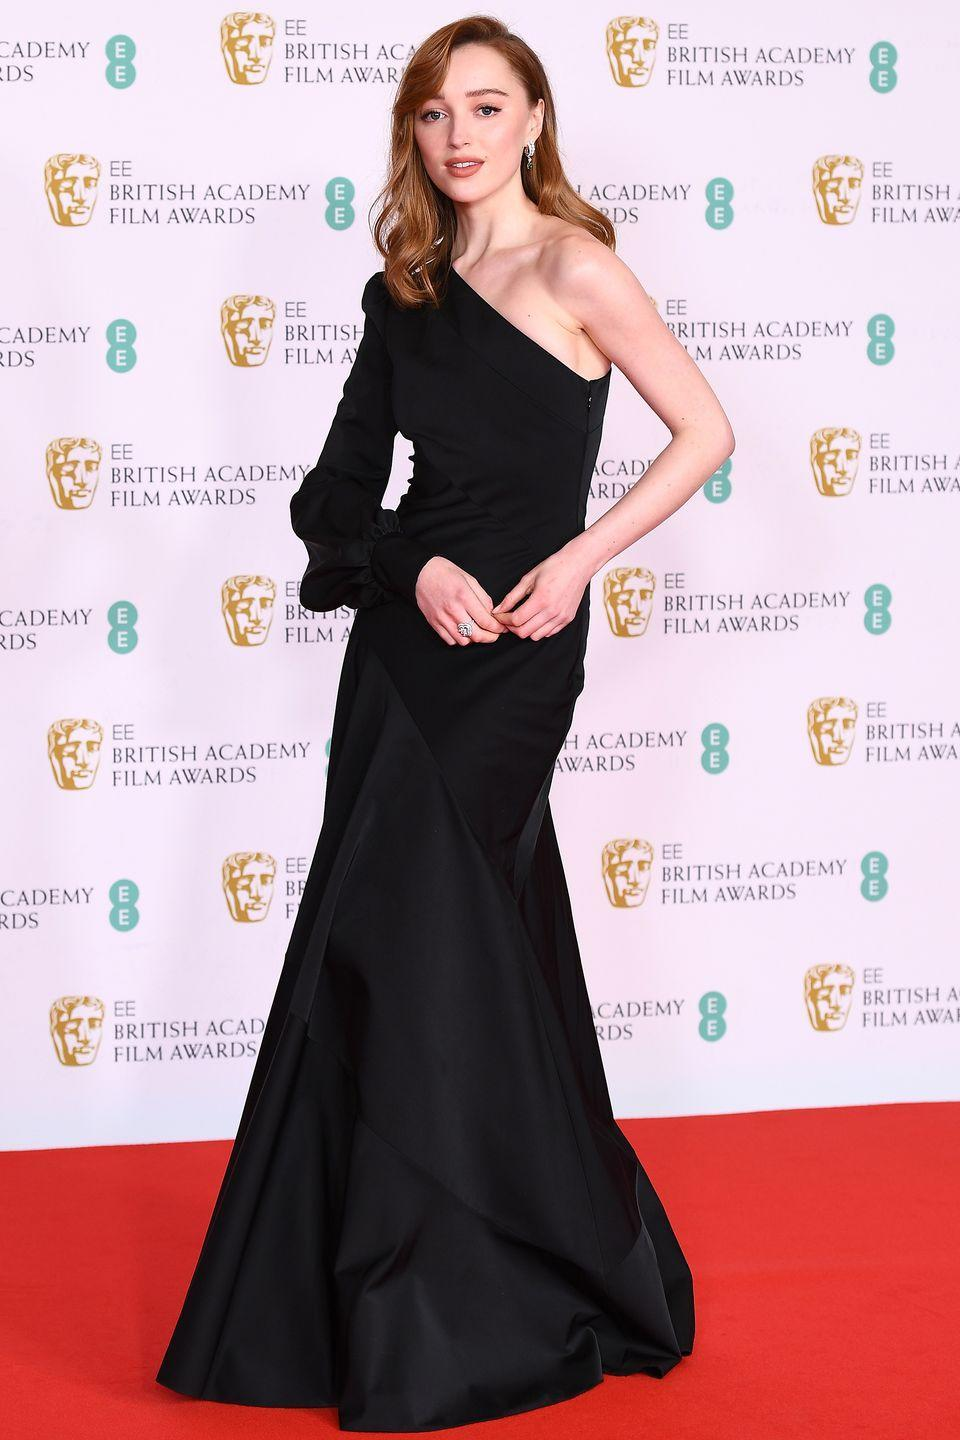 <p>Another lady who made a striking entrance in Louis Vuitton was Bridgerton's Phoebe Dyvenor, who chose a classic black, one-shouldered evening gown for the event.</p>